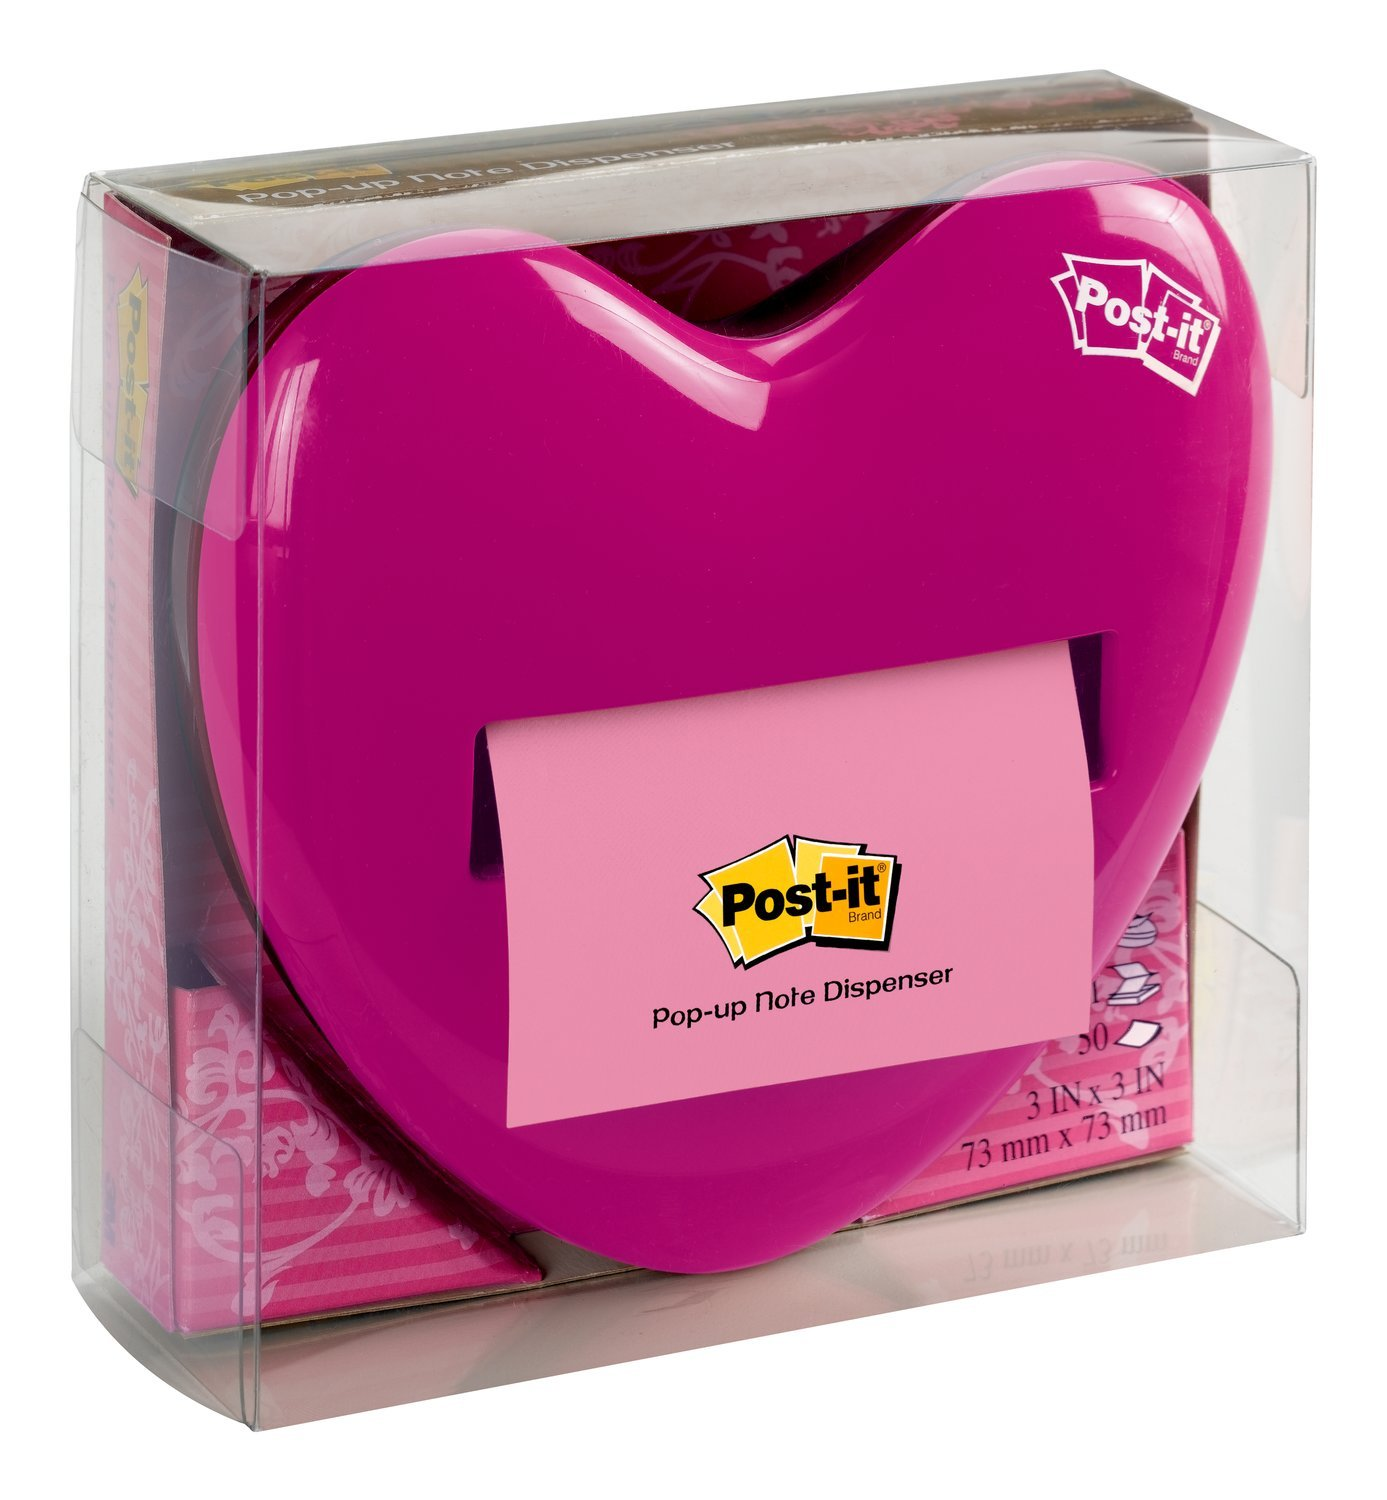 Post-it Pop-up Notes Dispenser for 3 x 3-Inch Notes, Pink, Heart Shape